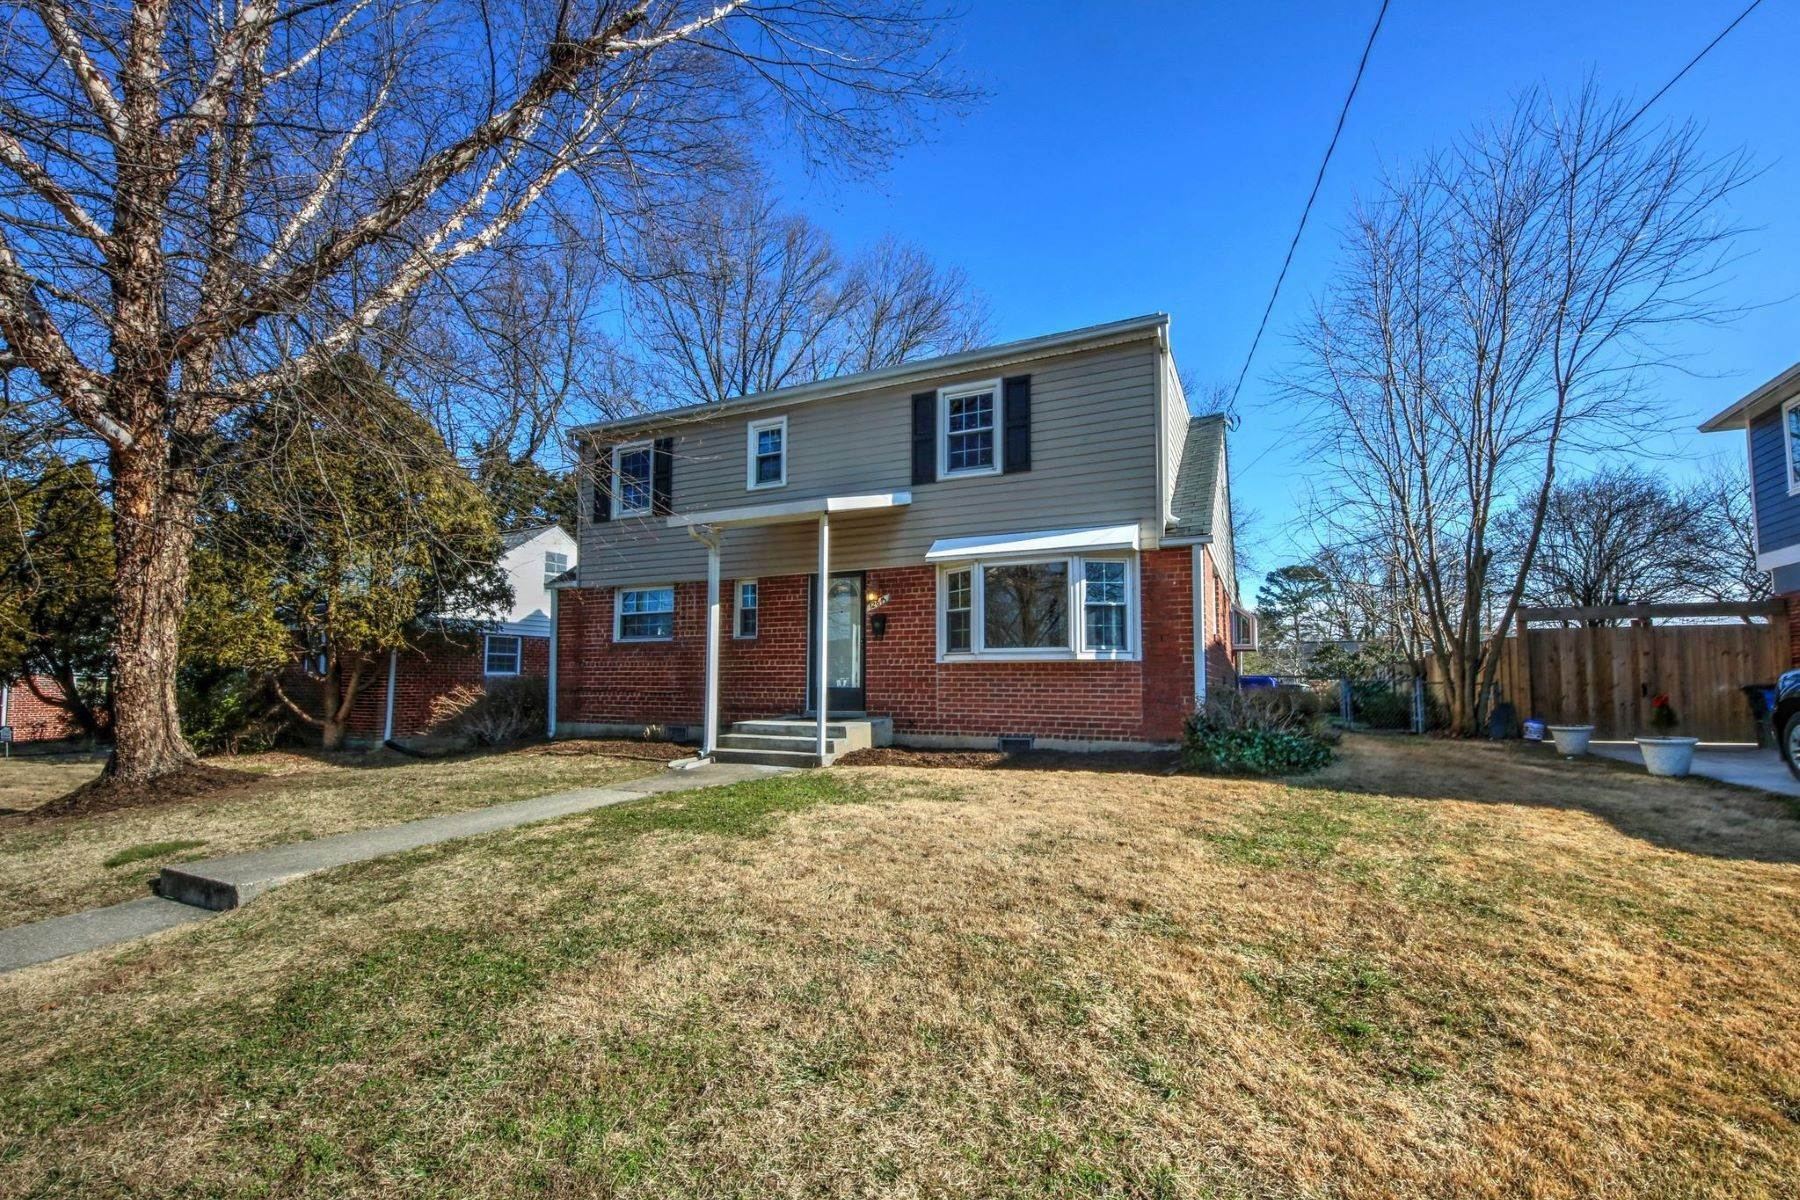 Single Family Homes for Sale at 12613 Farnell Dr Silver Spring, Maryland 20906 United States